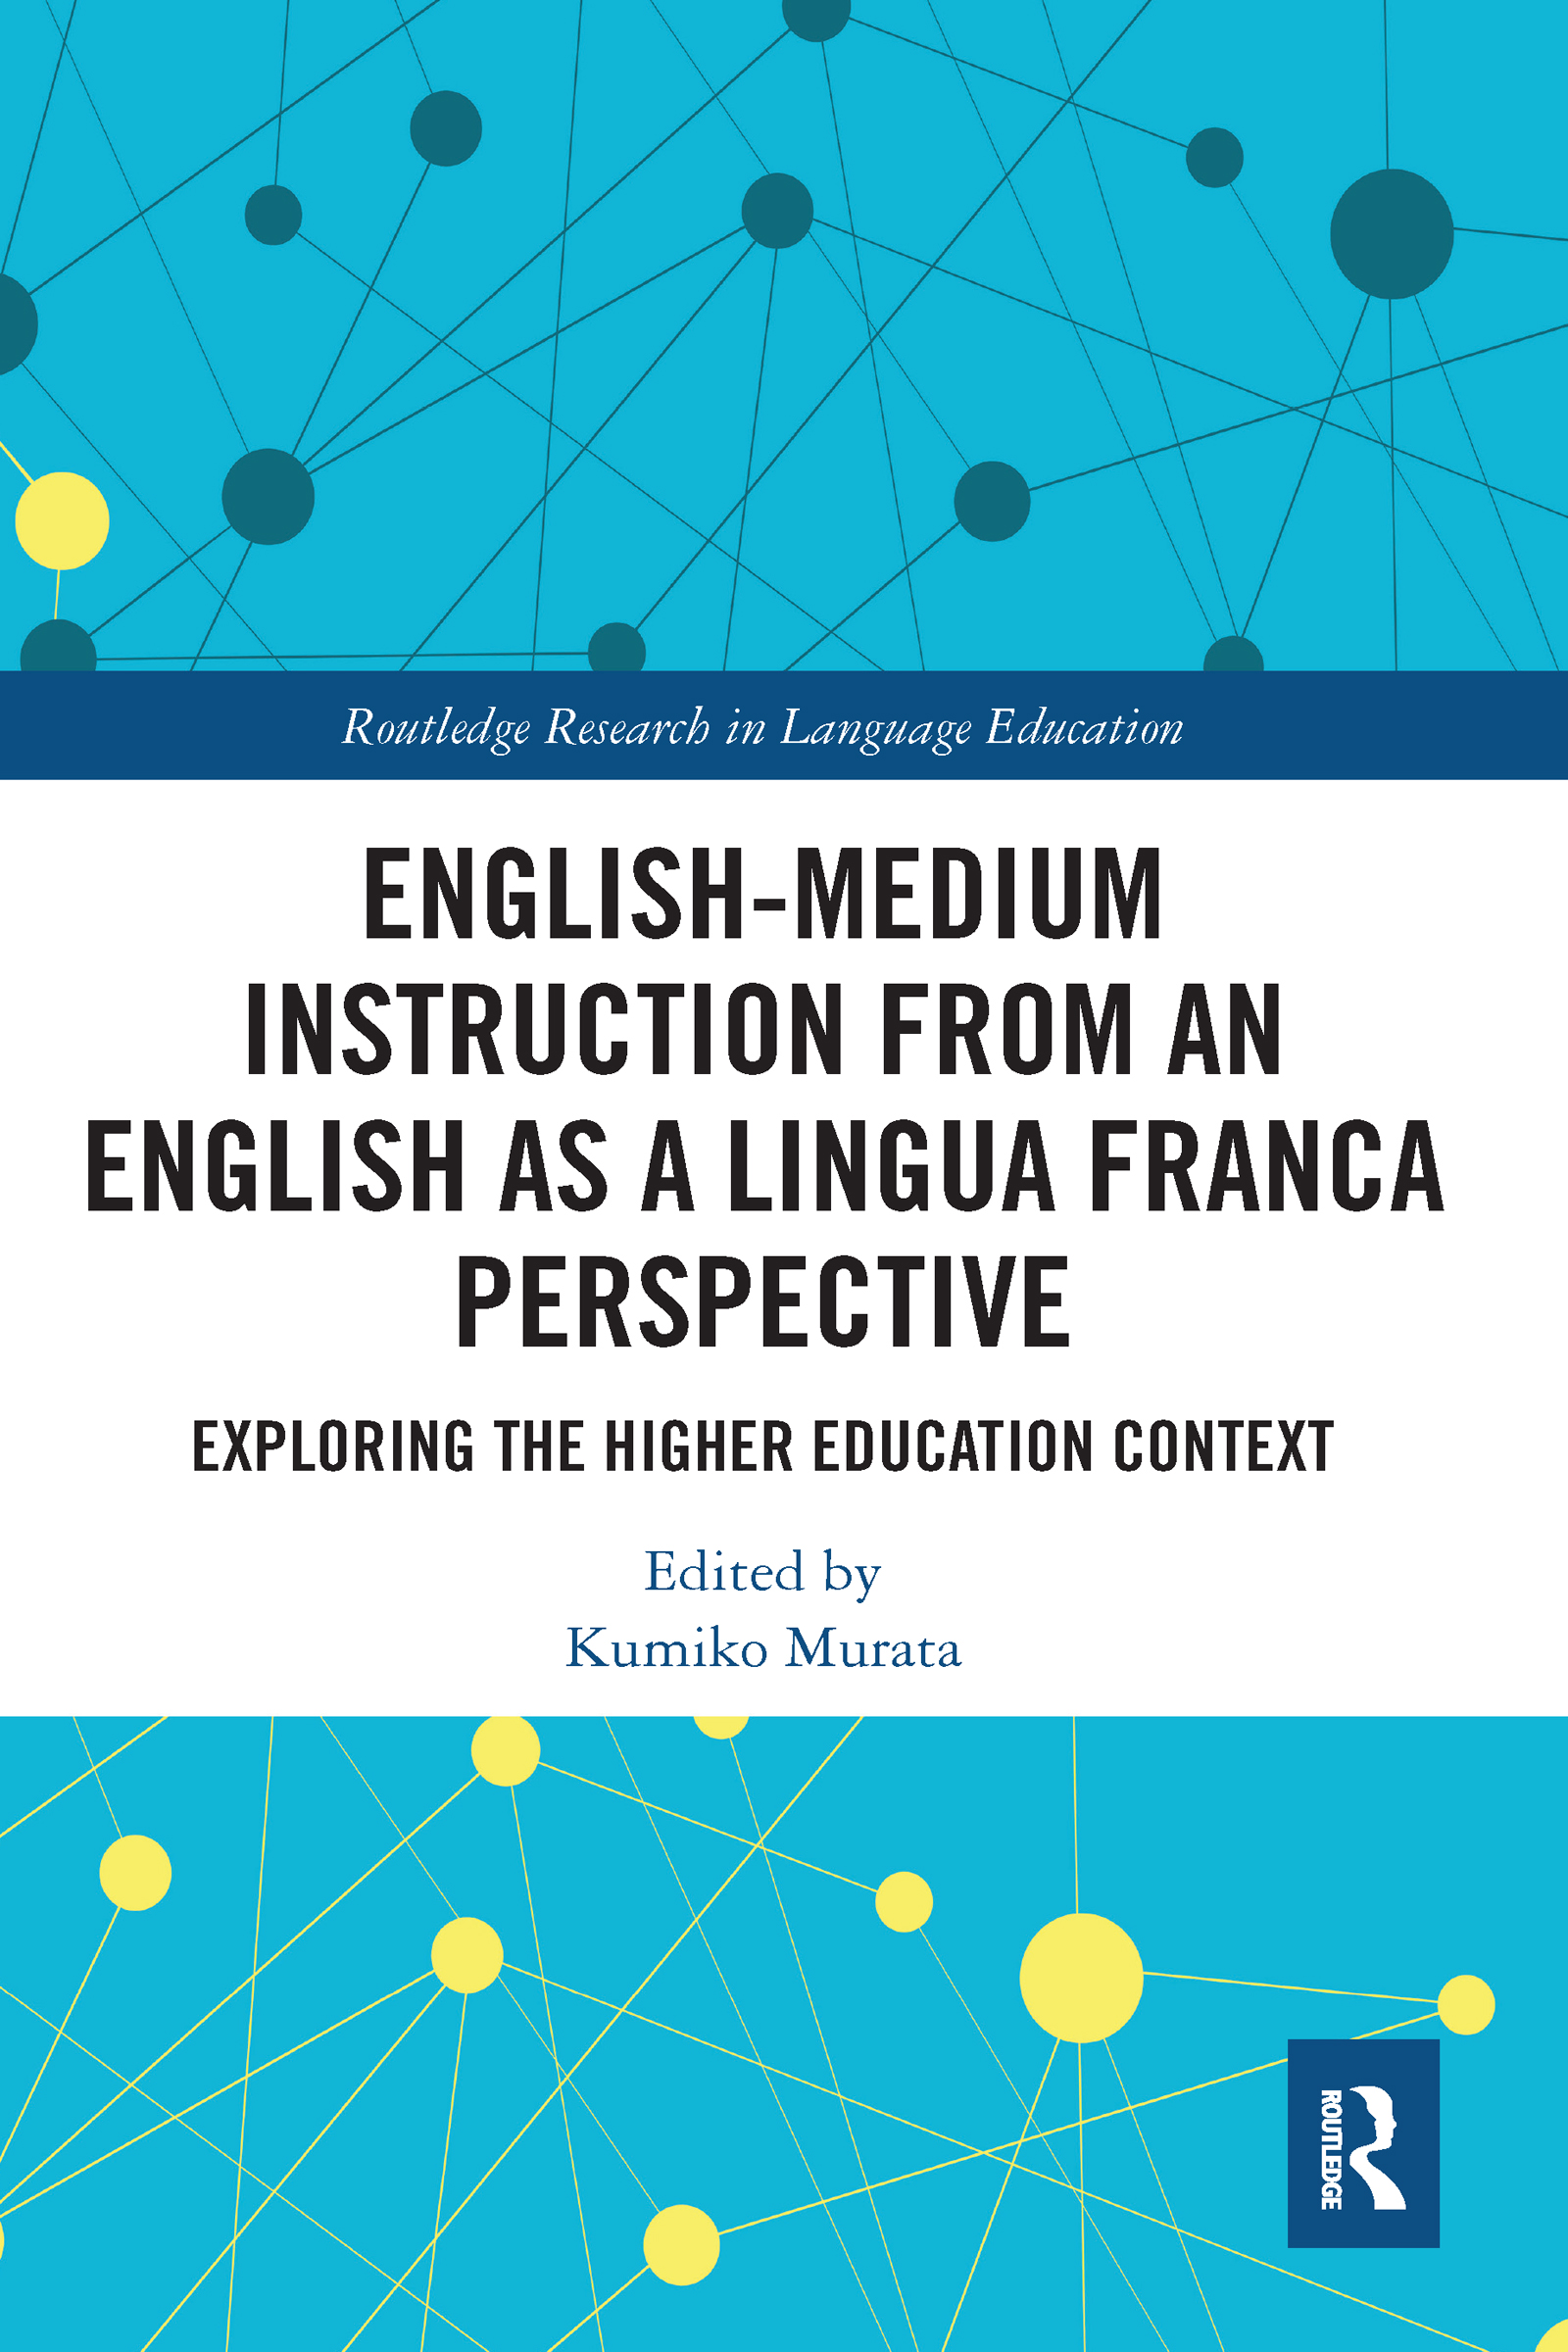 English-Medium Instruction from an English as a Lingua Franca Perspective